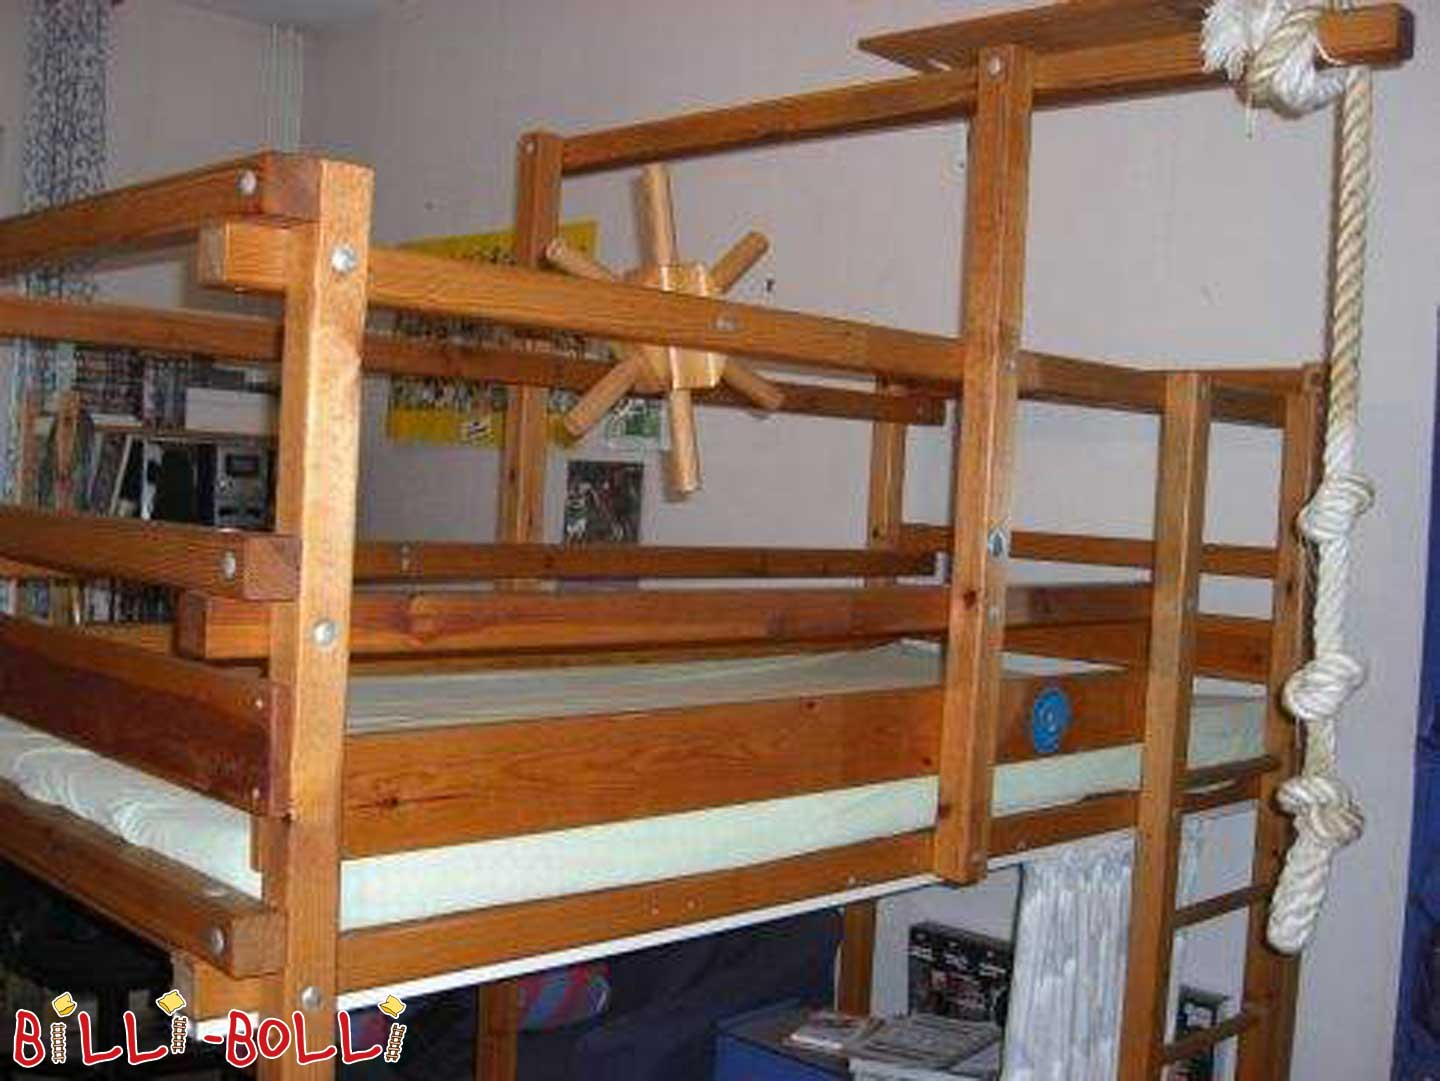 Gullibo Pirate HighBed (second hand loft bed)